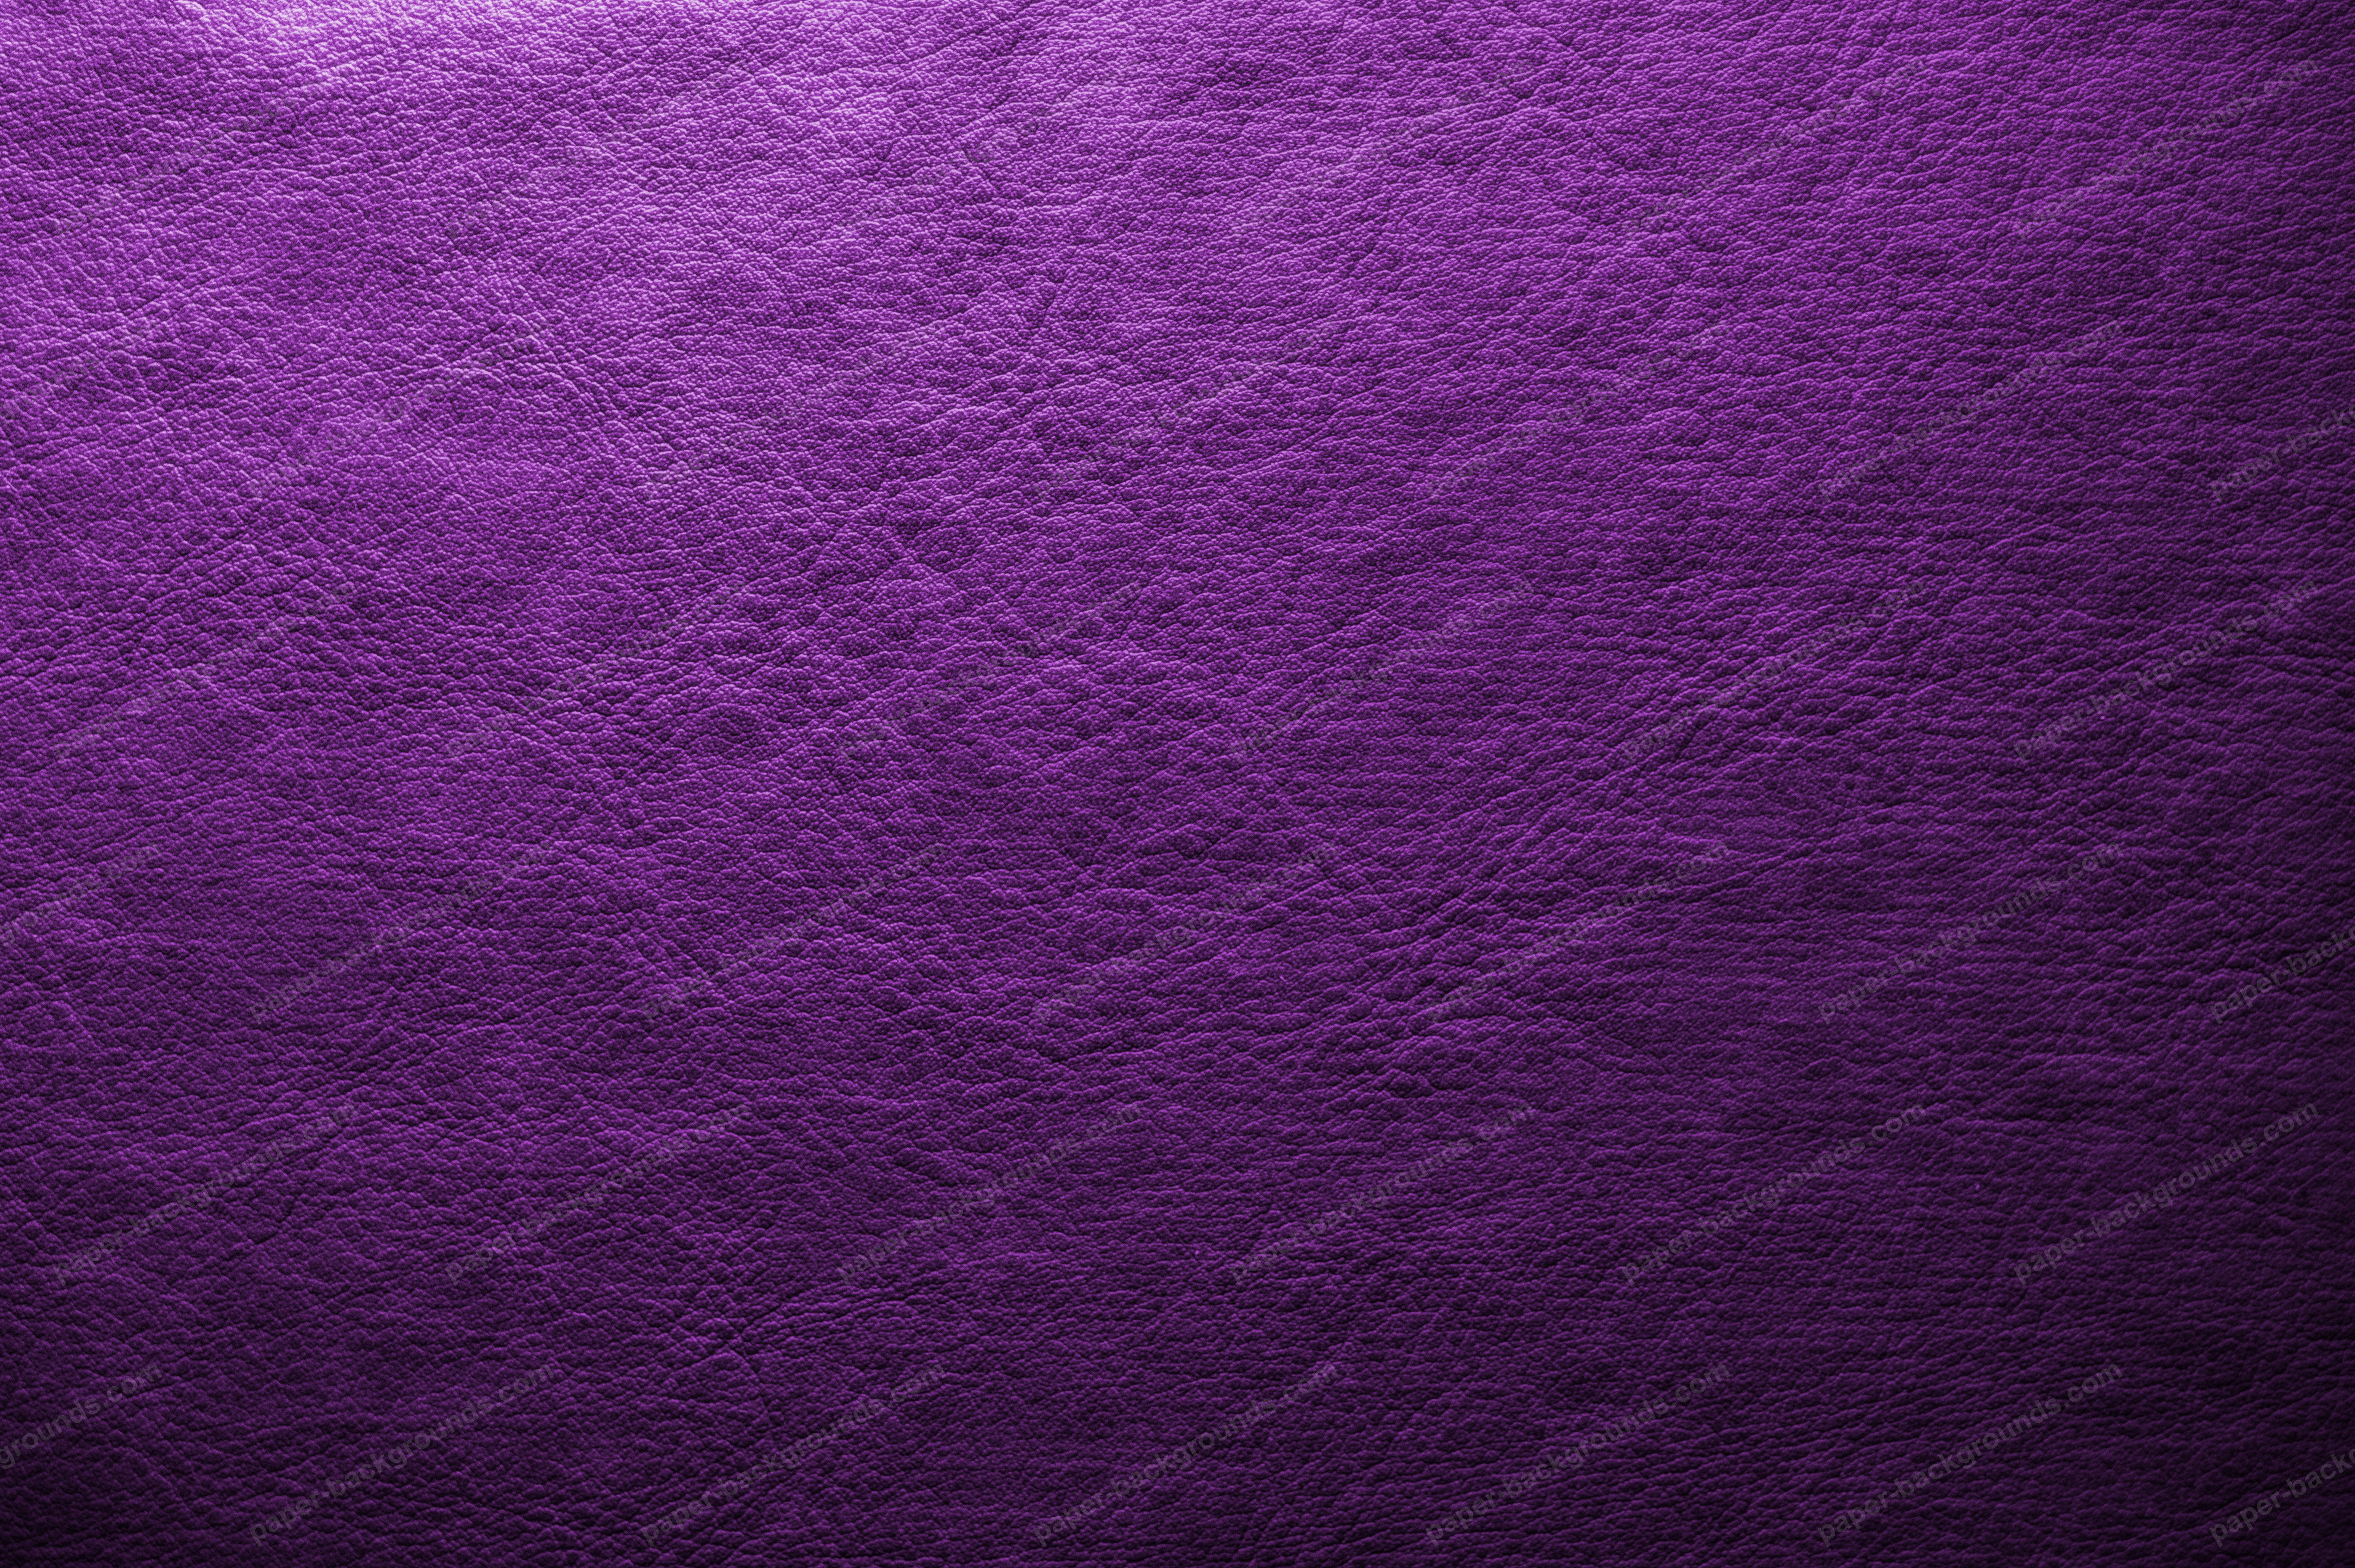 Abstract Purple Leather Background High Resolution 5465x3639